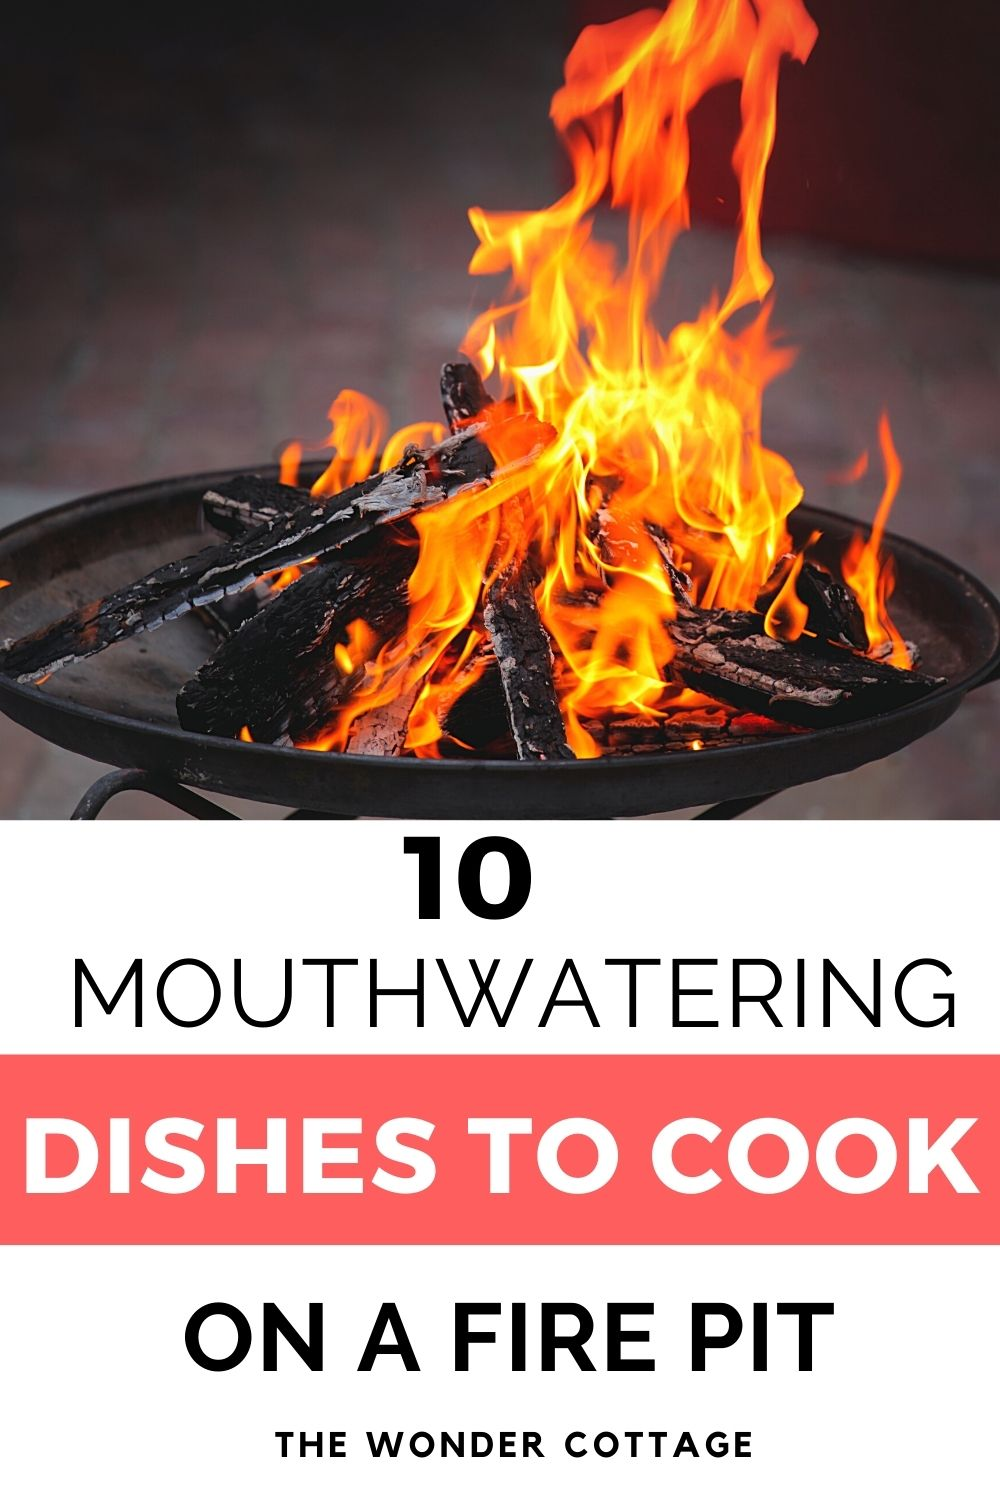 10 mouthwatering dishes to cook on a fire pit